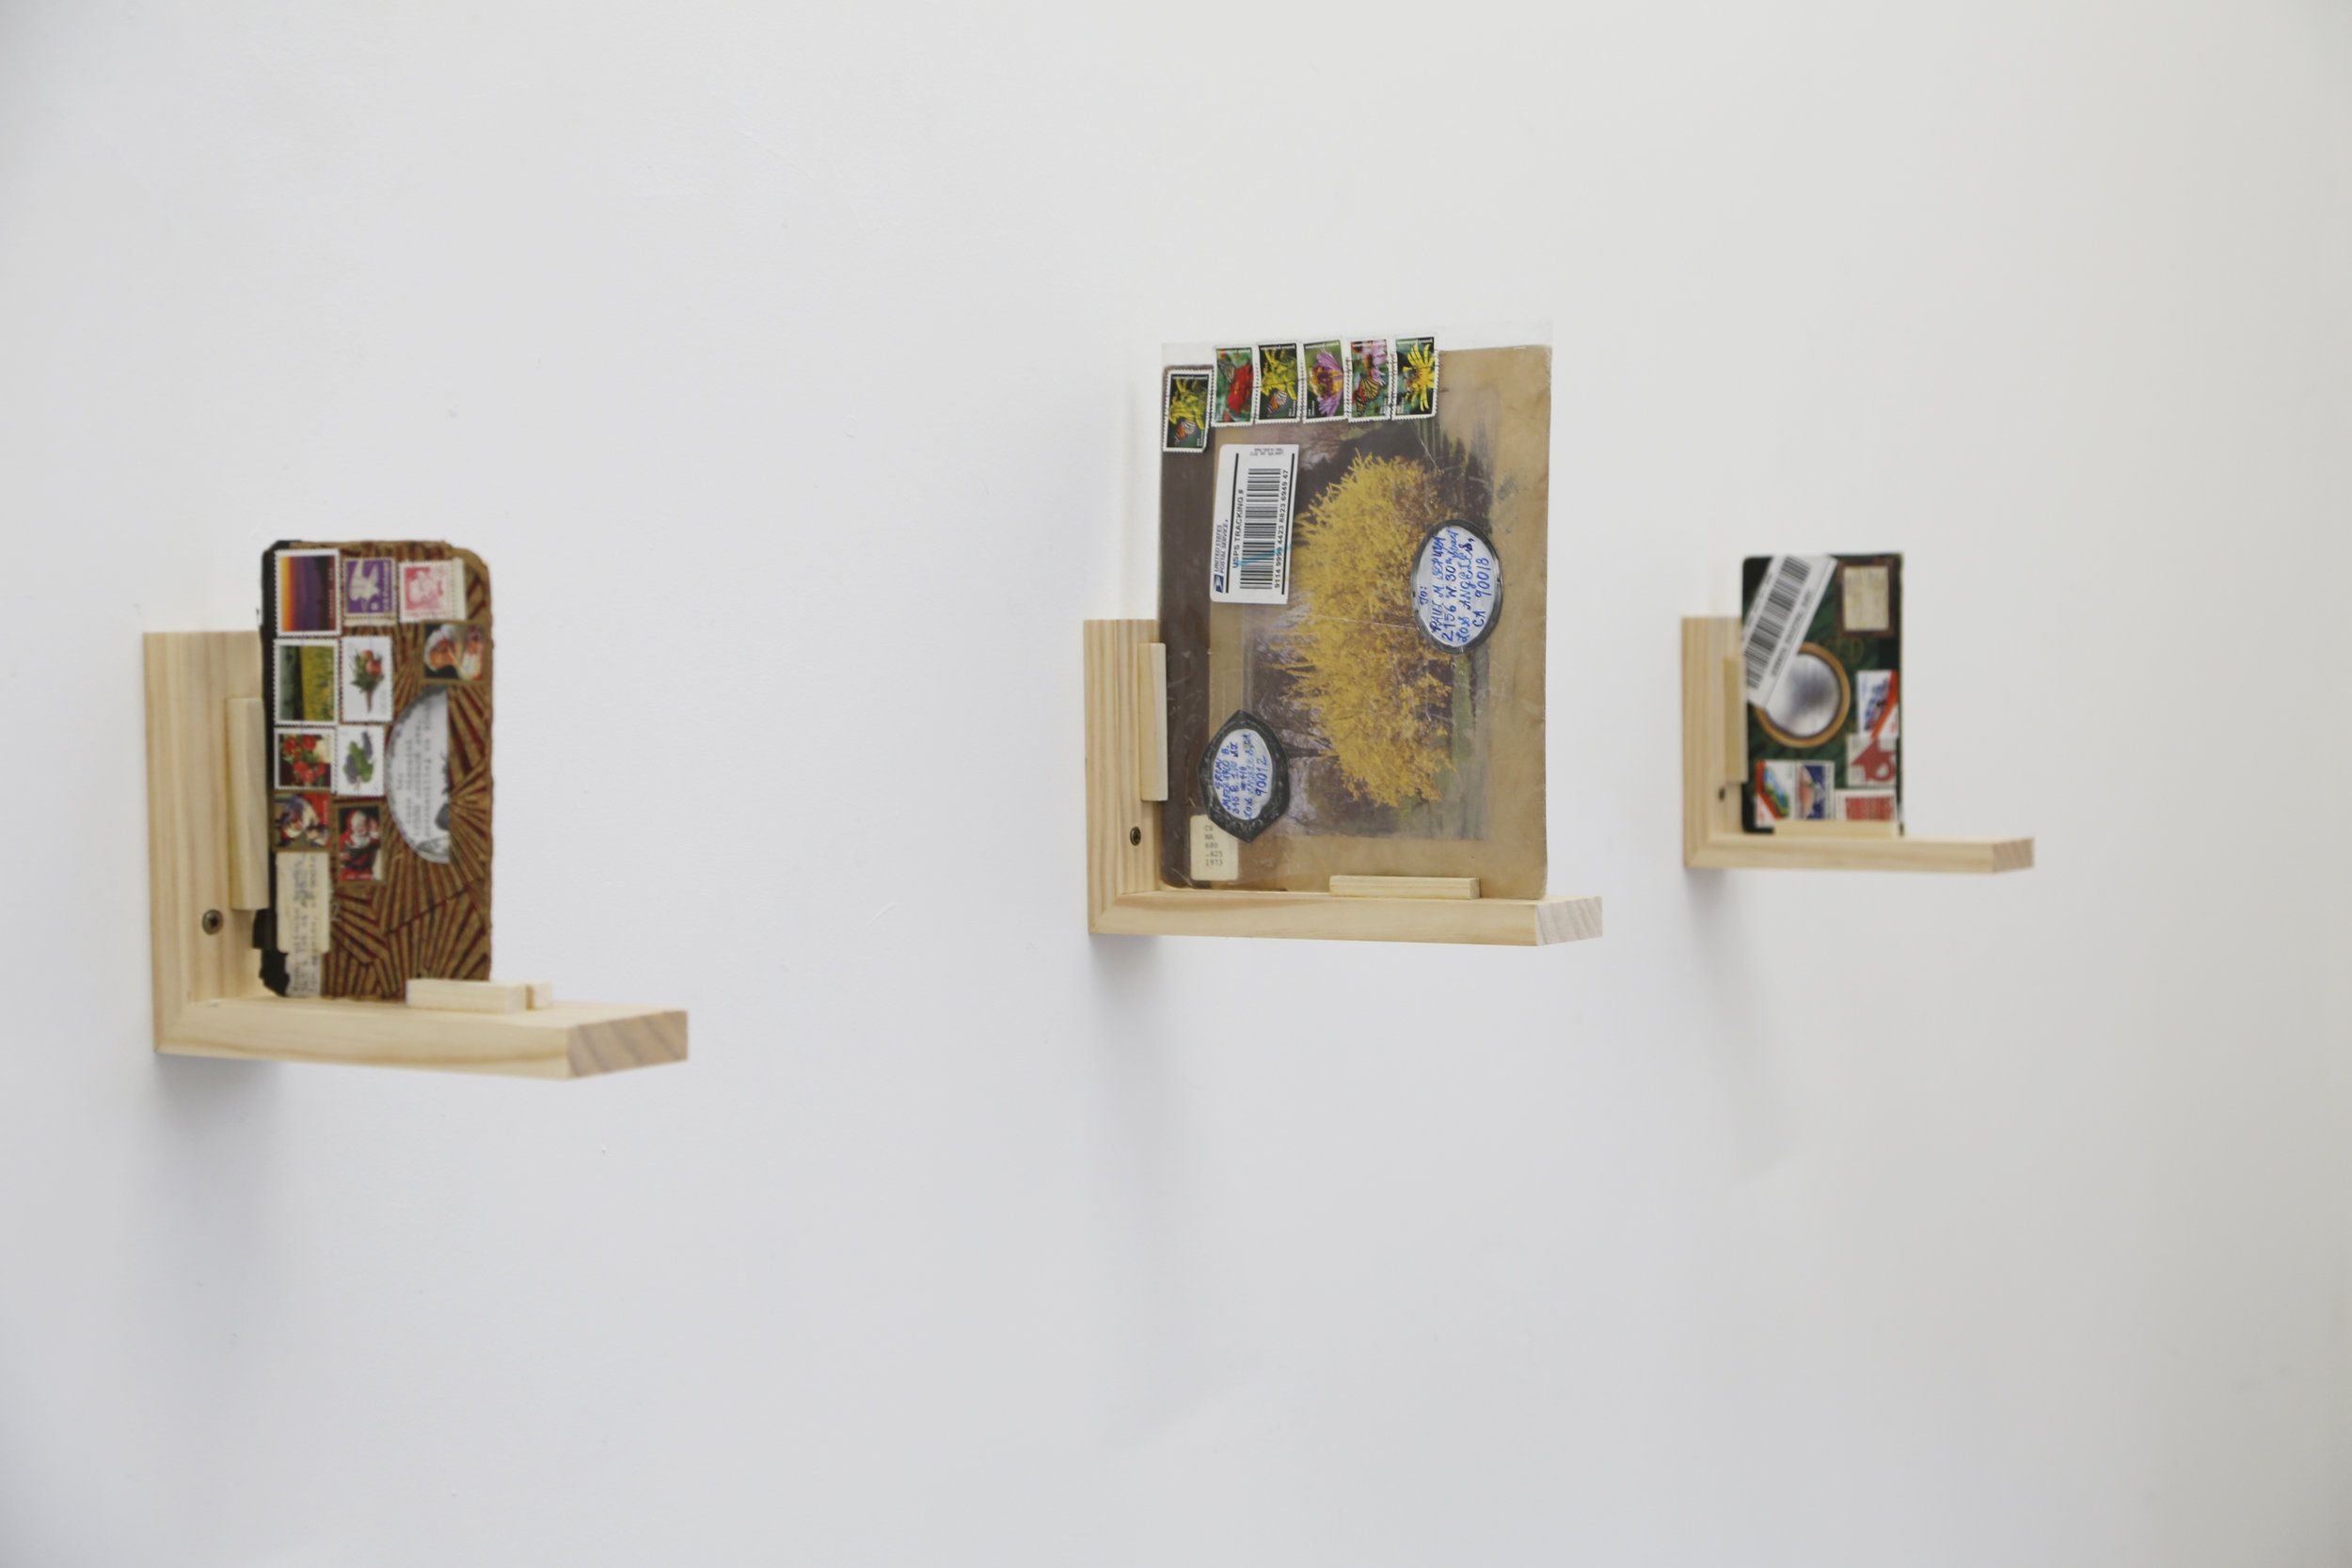 """Texts and Messages""  2019 July 8  POST at MiM Gallery, Los Angeles, CA  Photo credit: HK Zamani"